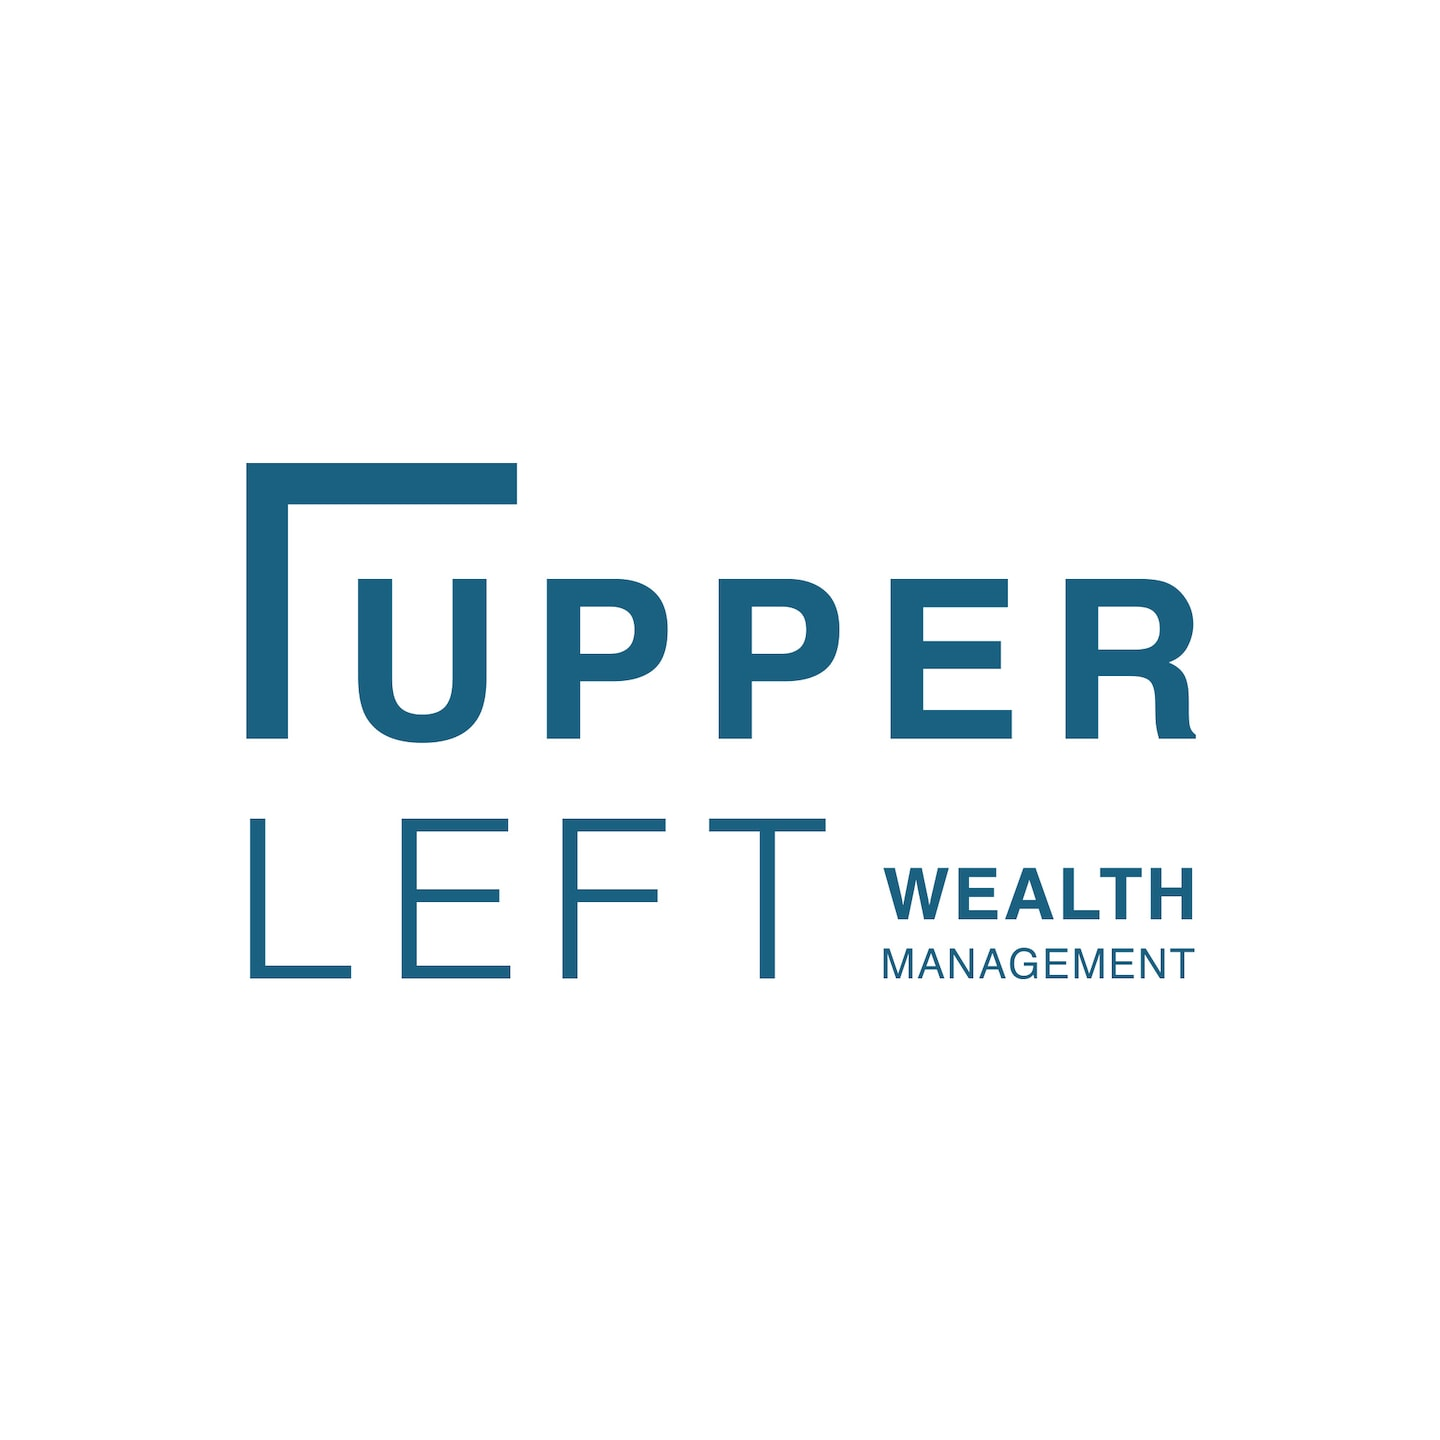 Upper Left Wealth Management